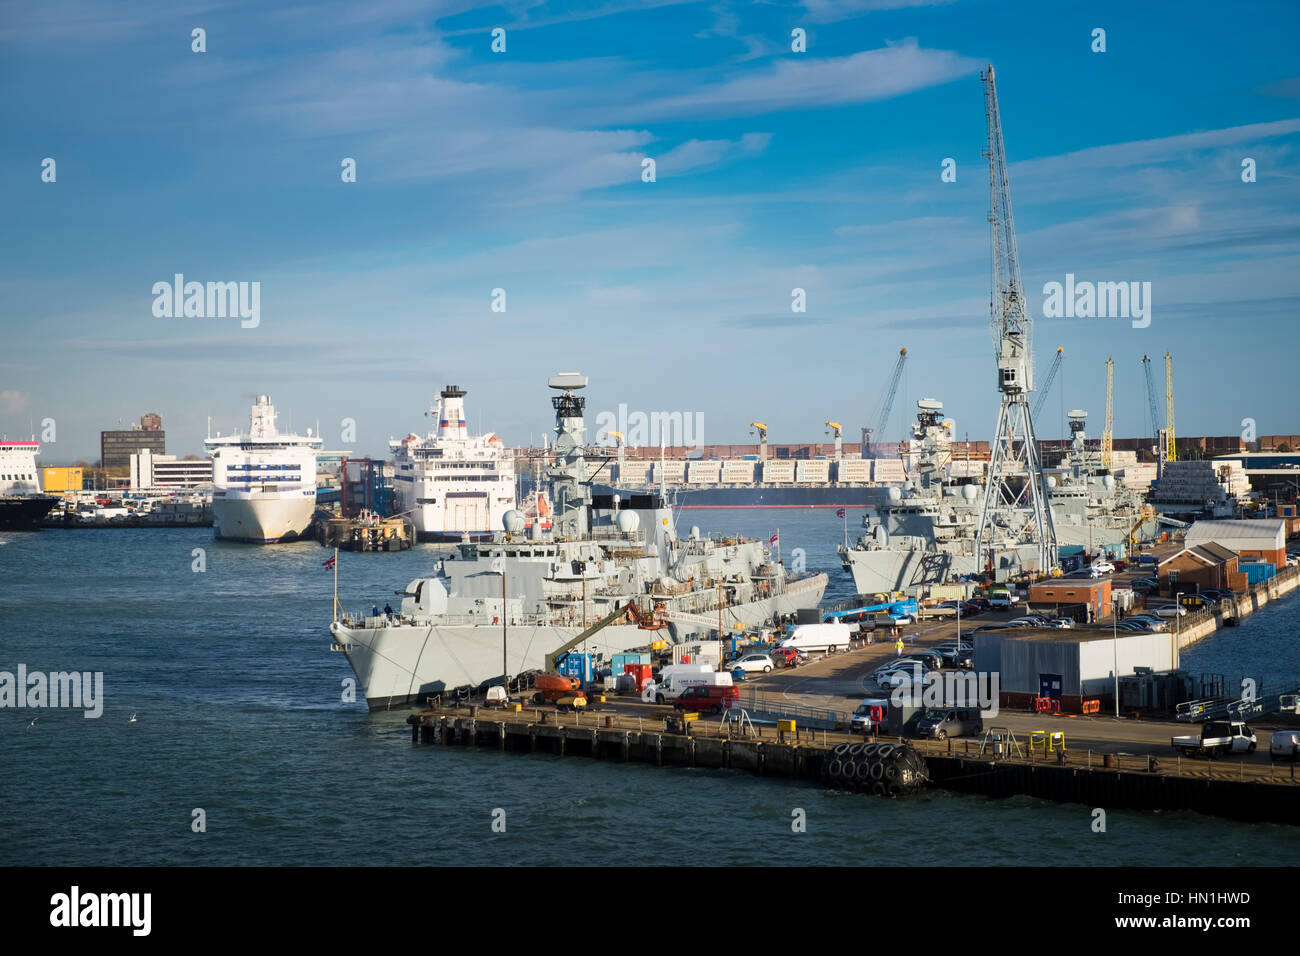 British Navy ships tied up in Portsmouth Harbour navy base - Stock Image